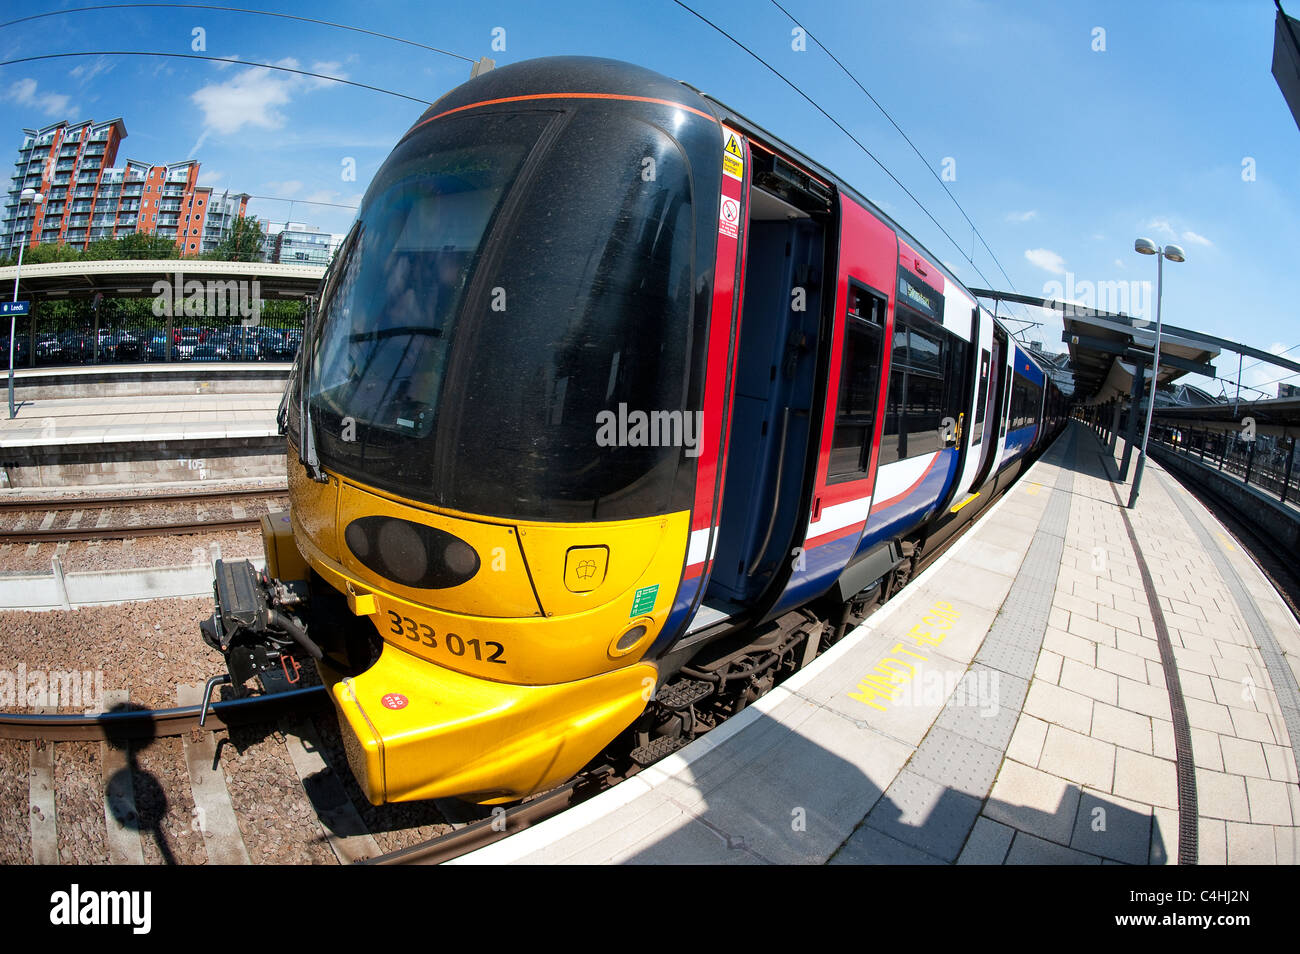 Class 333 train in Northern Rail livery at a railway station in England. - Stock Image